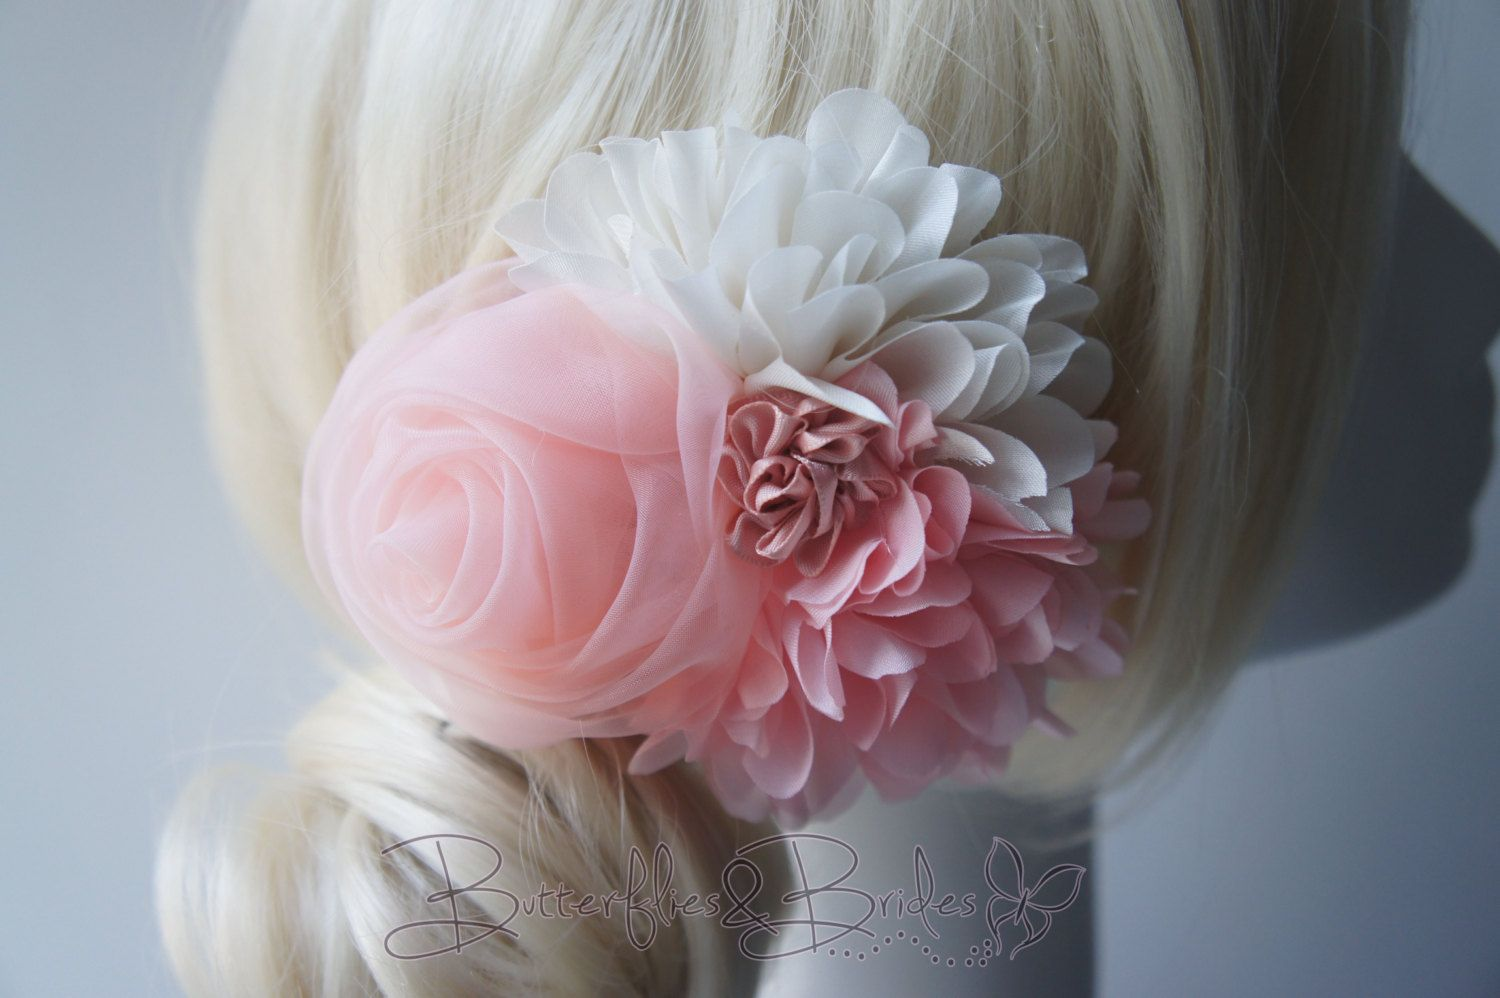 Adorn you hair with one of a kind hair pieces to match your look!